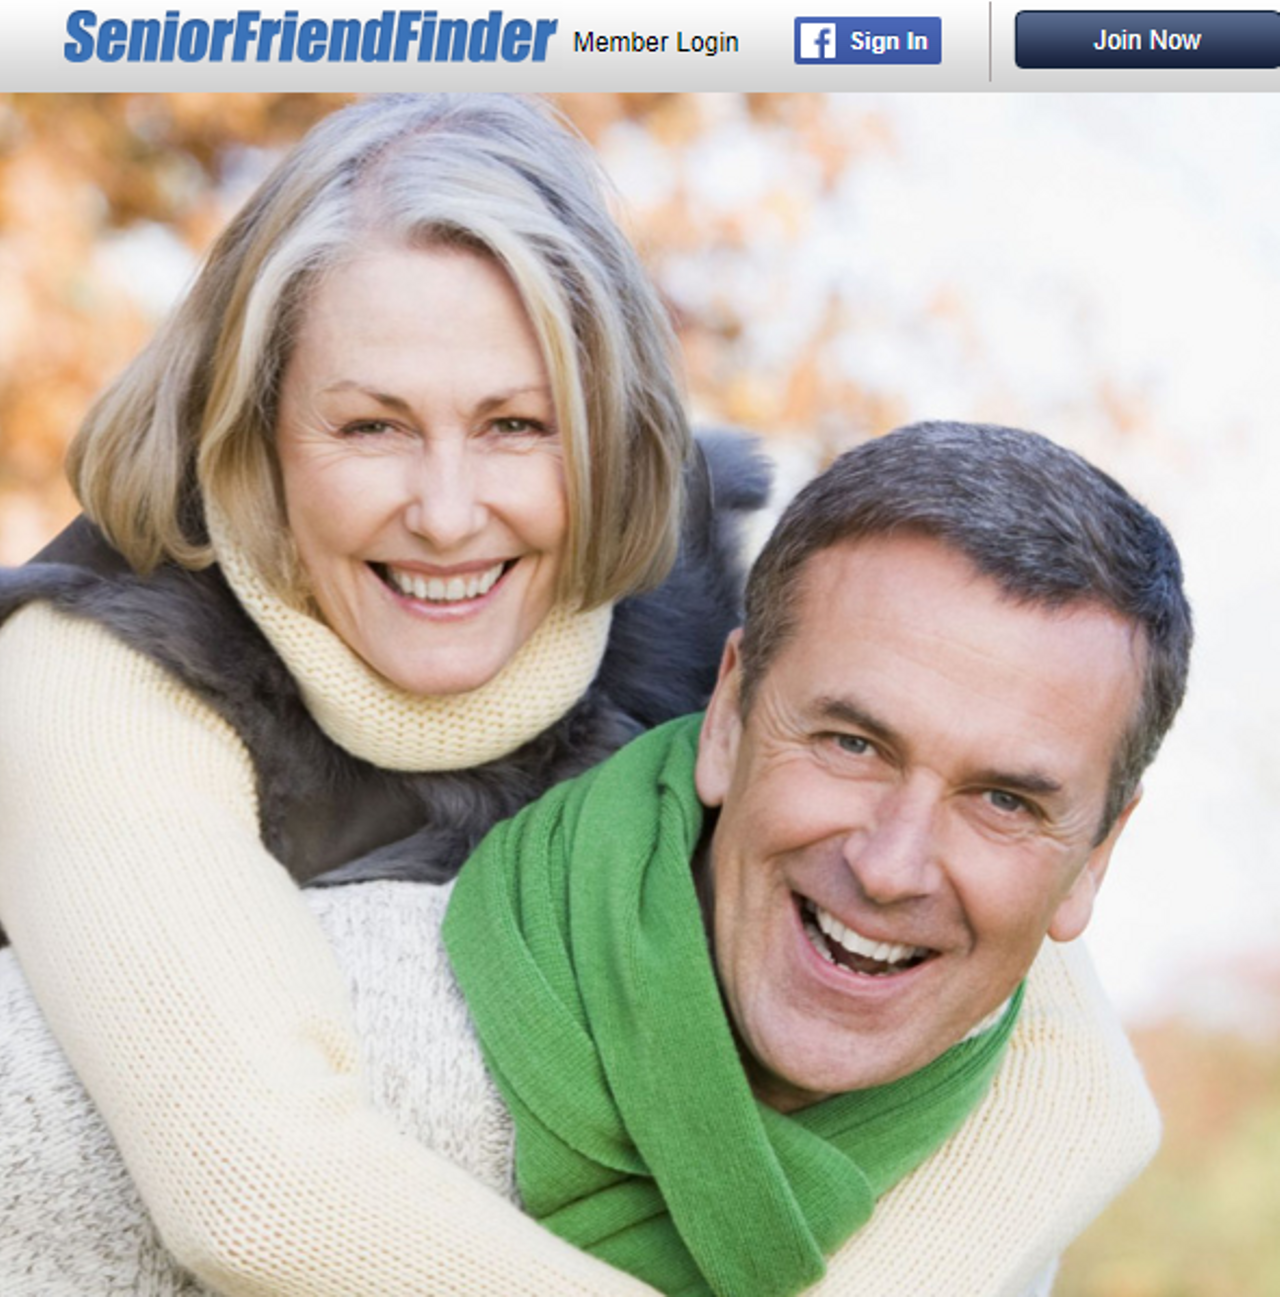 Senior Friend Finder main image